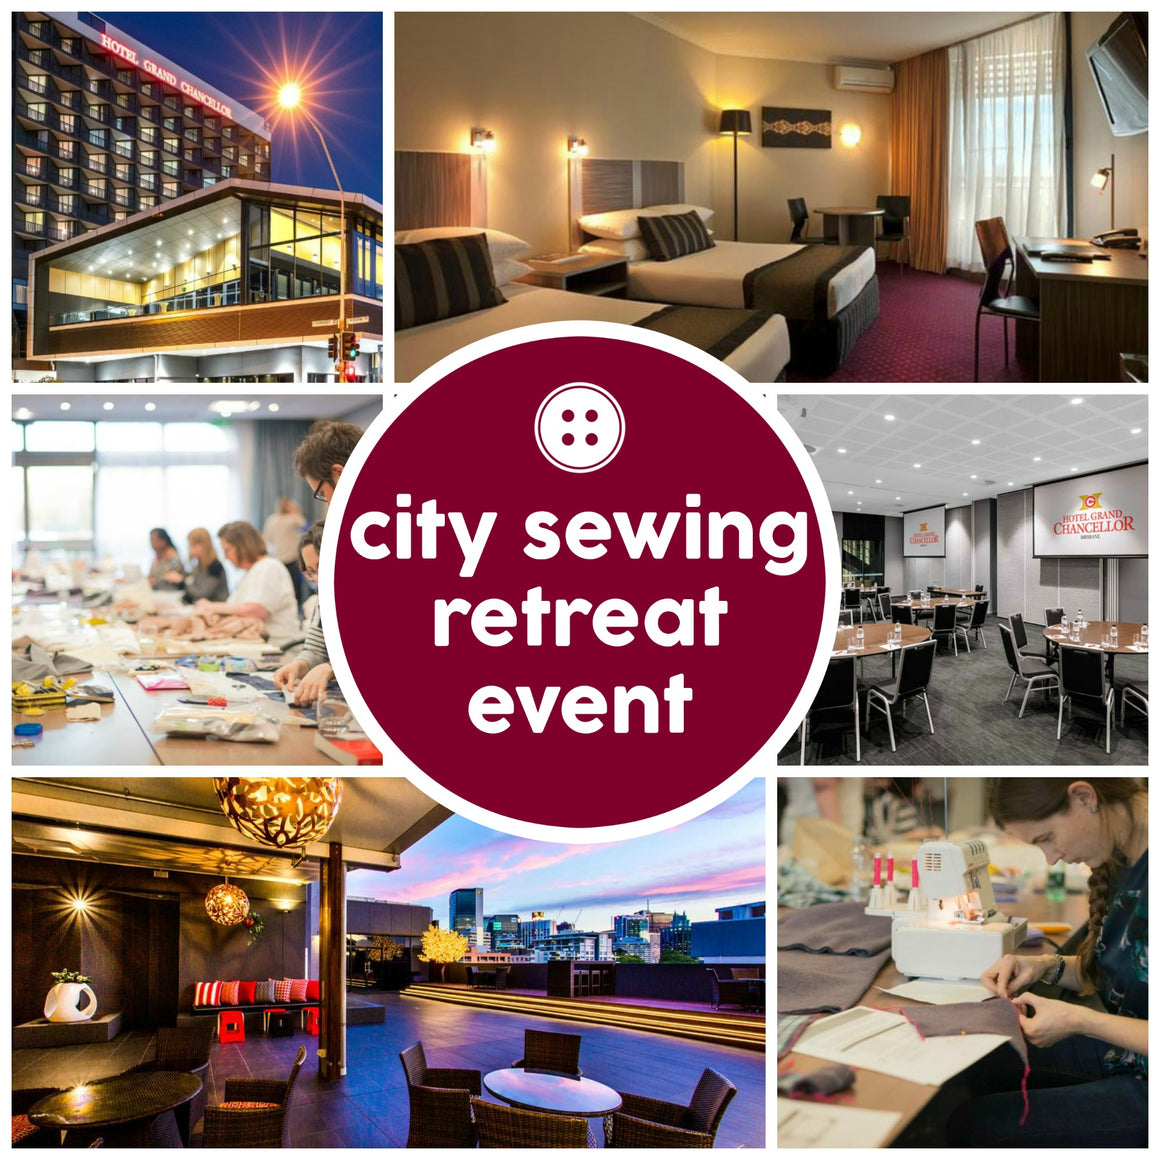 Events - City Sewing Retreat -  - SewingAdventures - SewingAdventures - sewing brisbane -brisbane sewing school - brisbane sewing studio -learn to sew brisbane - kids sewing - teen sewing - adult sewing